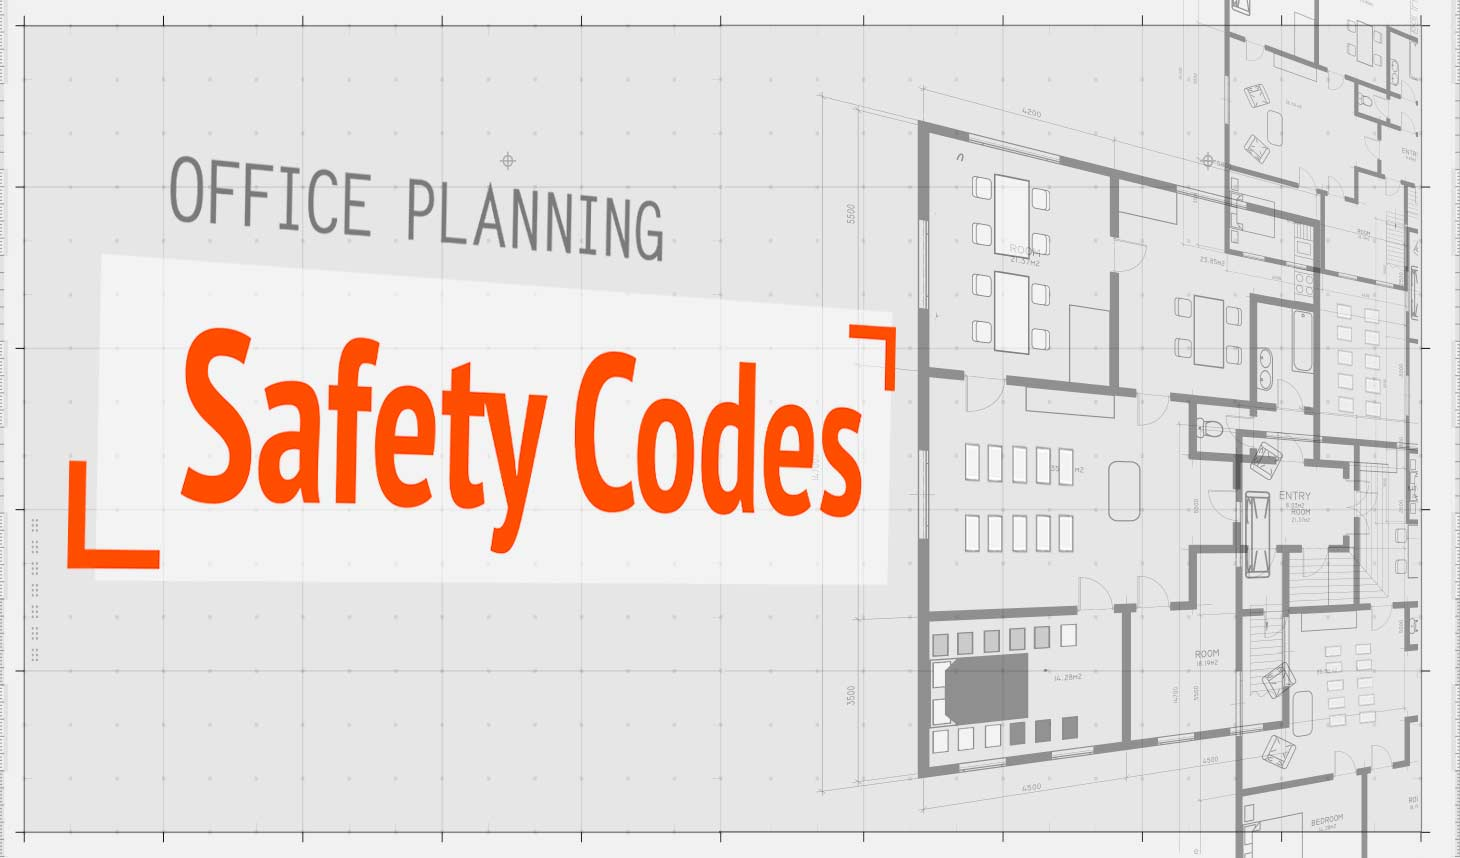 medium resolution of office planning fire safety codes